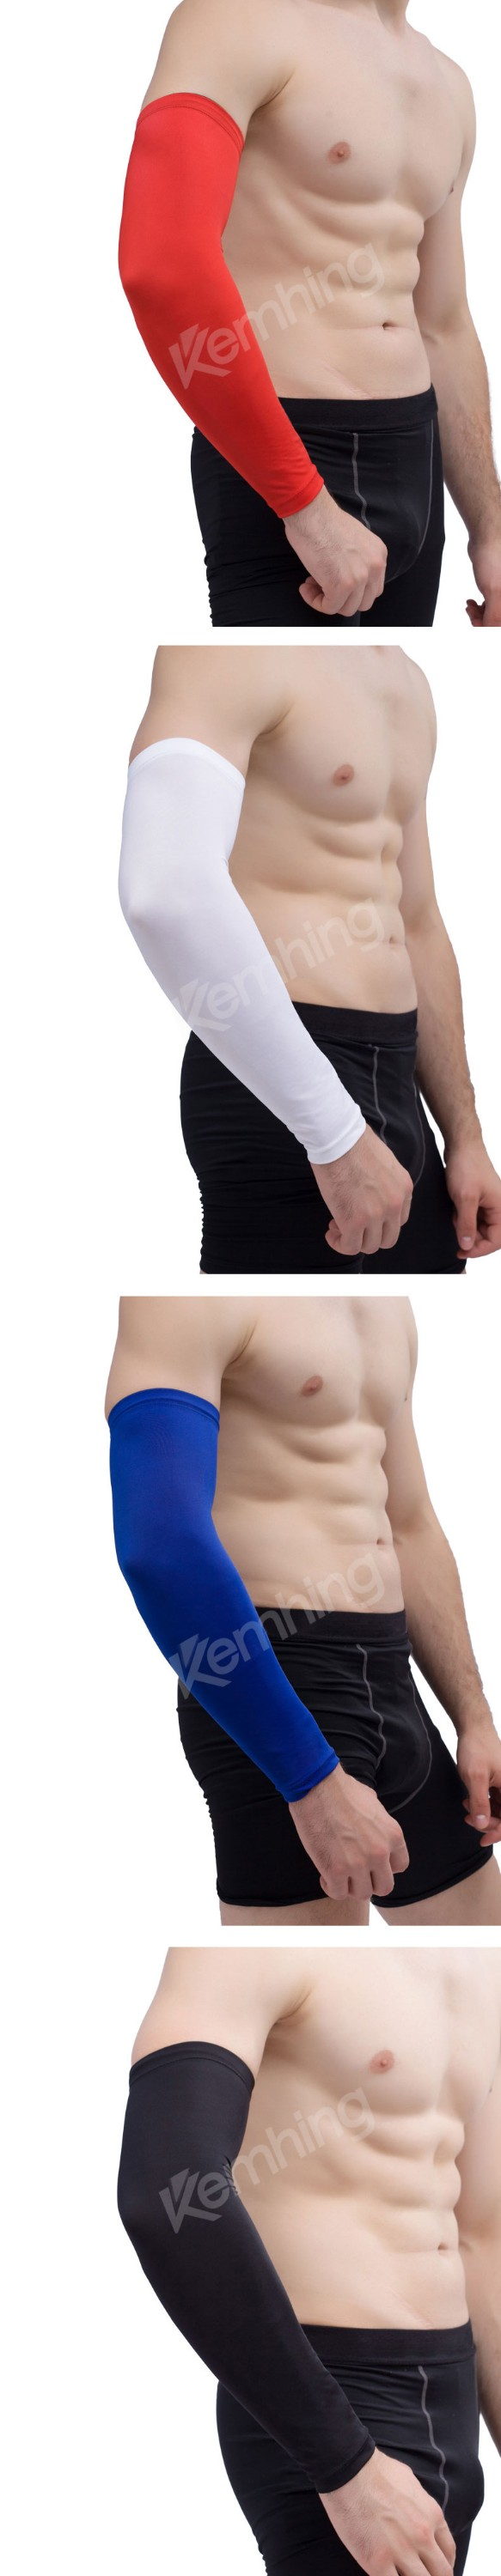 Custom compression arm sleeve Sports Black Arm Sleeves Cycling Basketball UV protector basketball arm sleeve